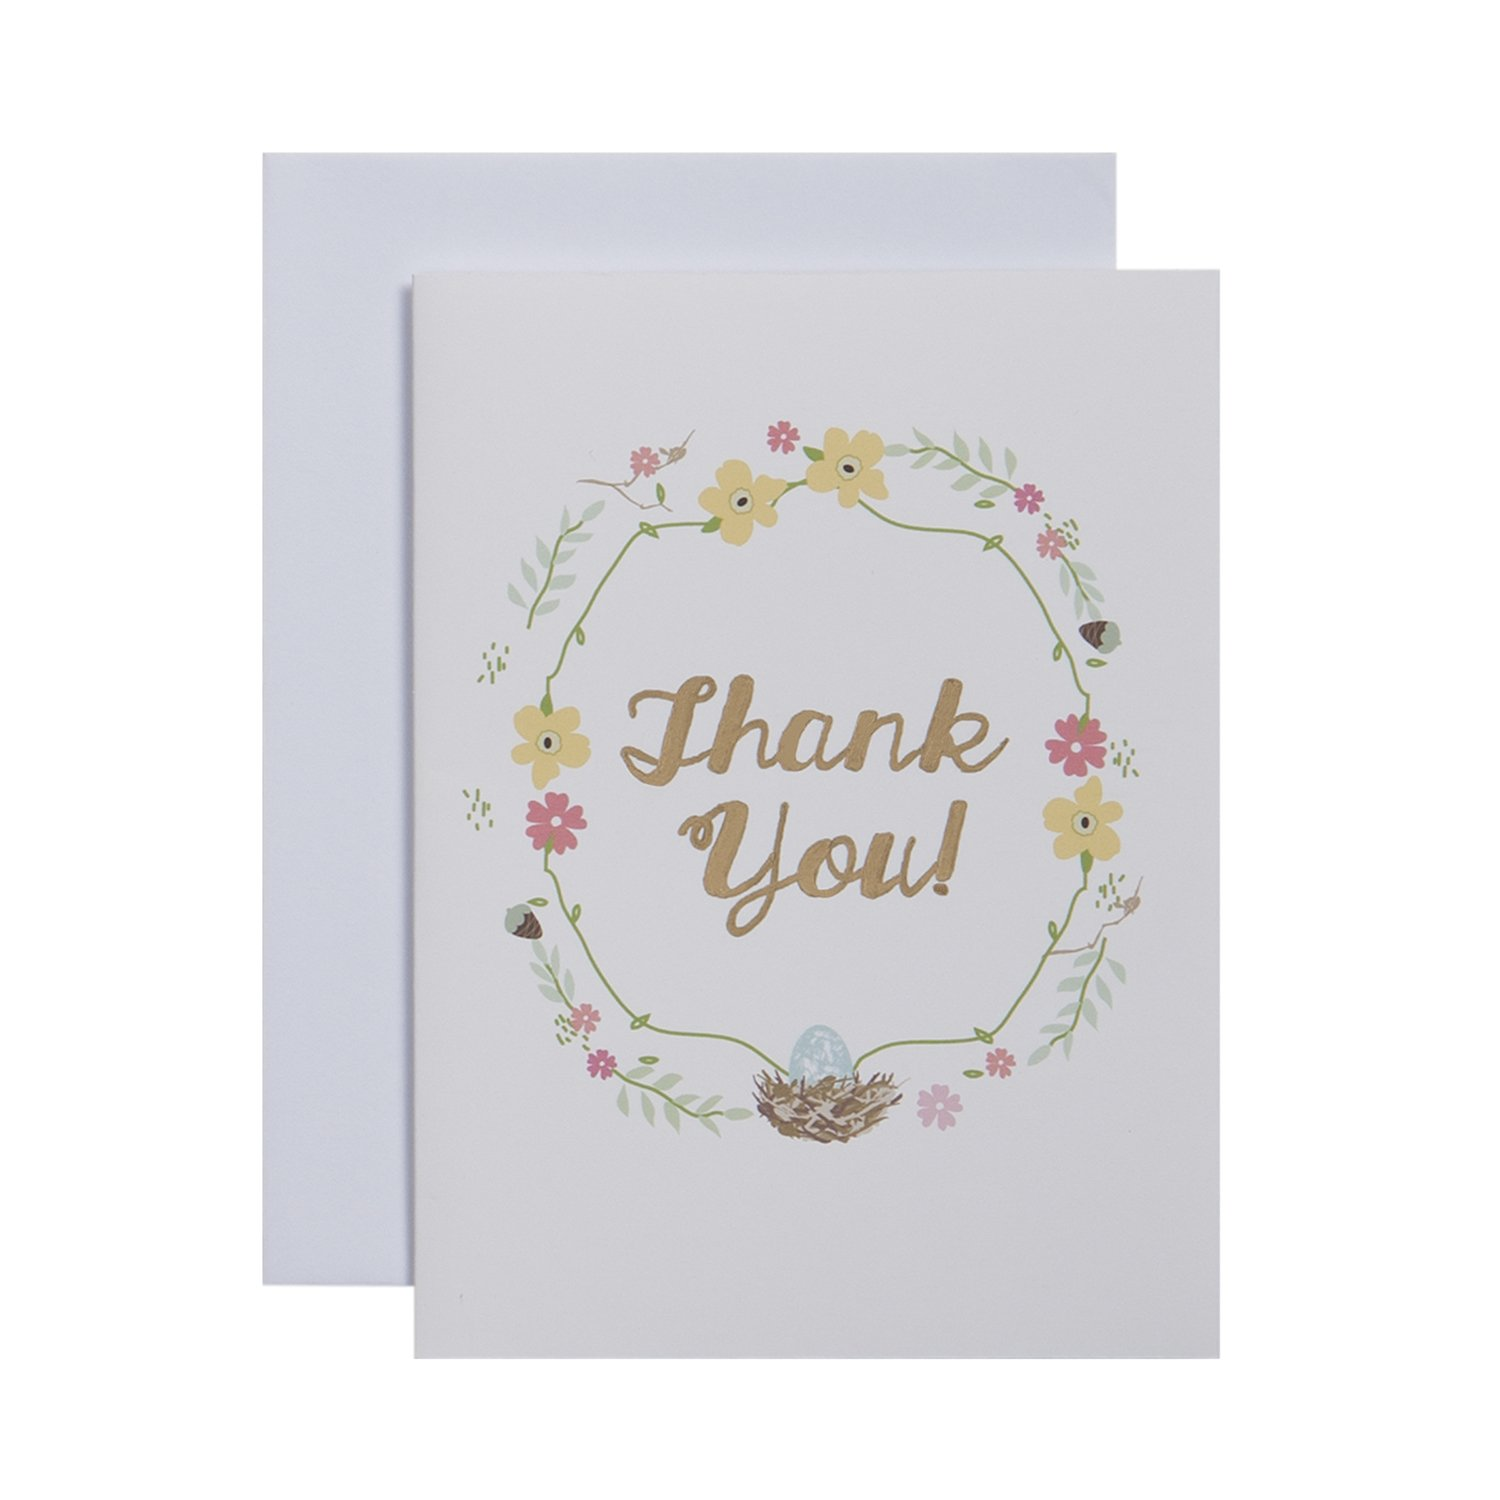 CRG Boxed Thank You Notes, Nest, 10-Count C.R. Gibson NTT-13914